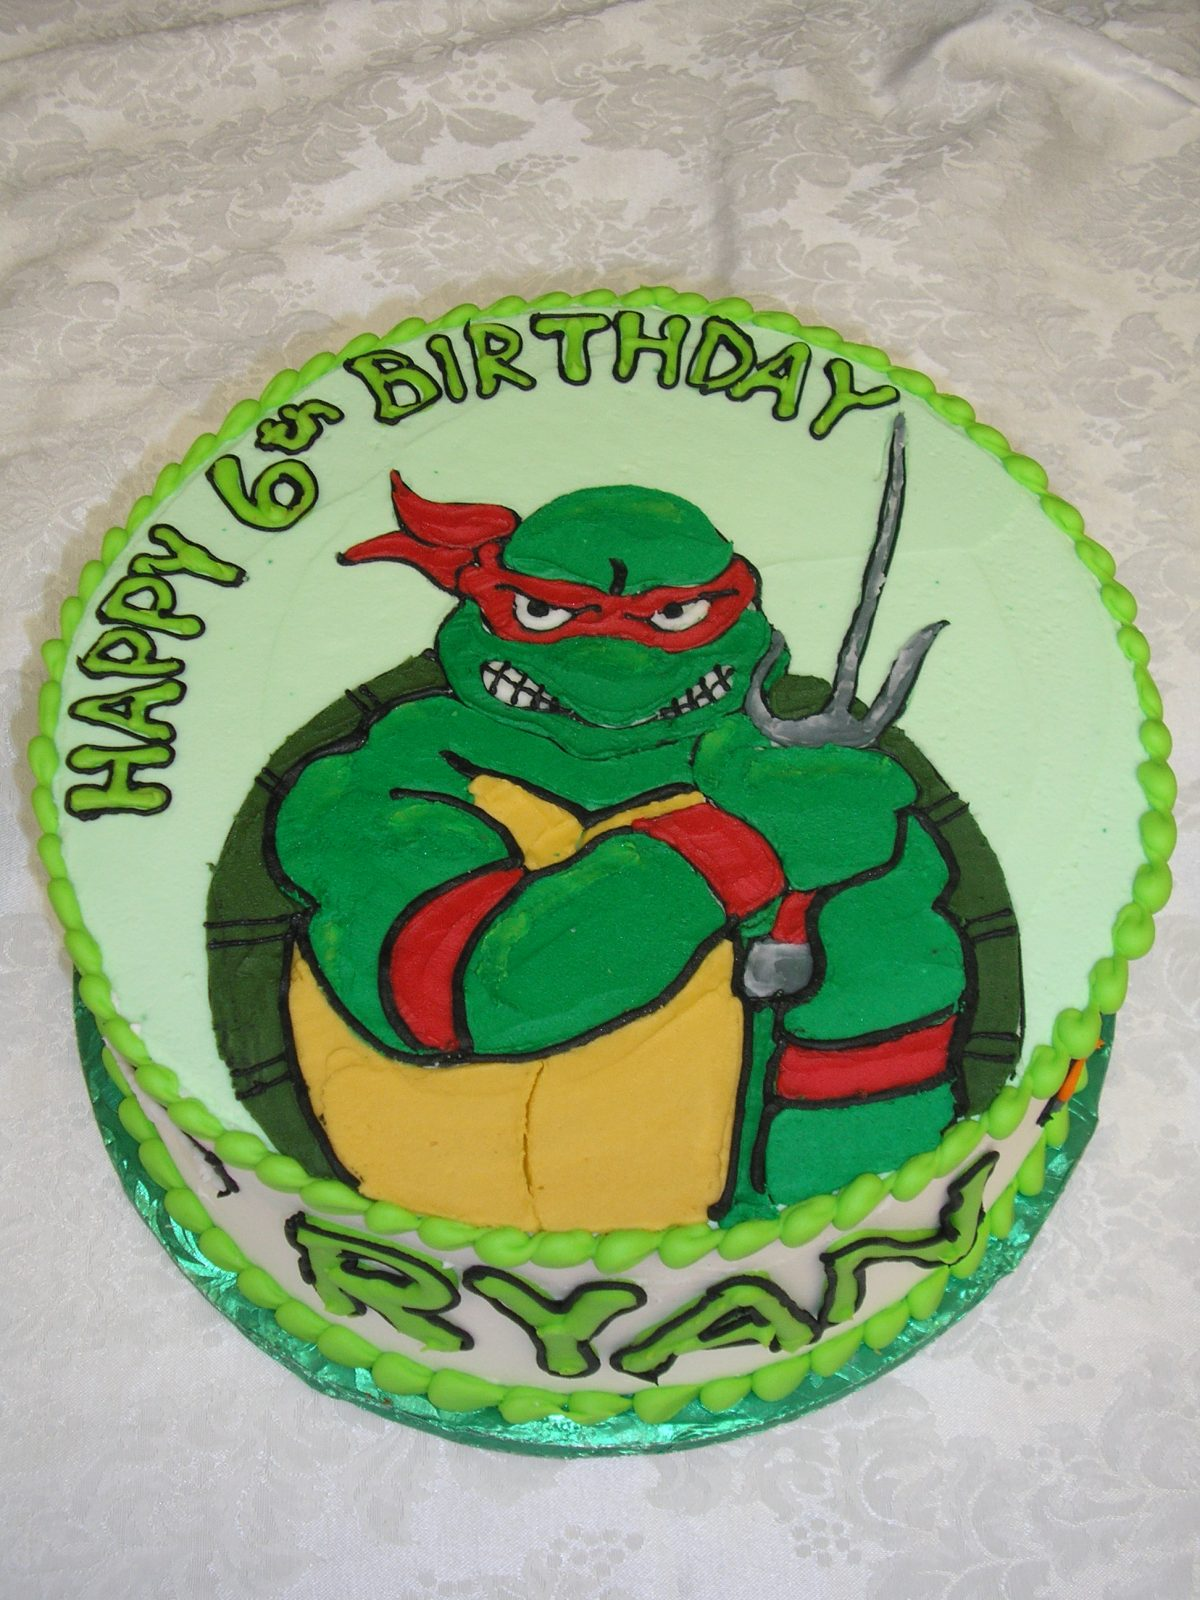 icing drawing of a ninja turtle on a cake